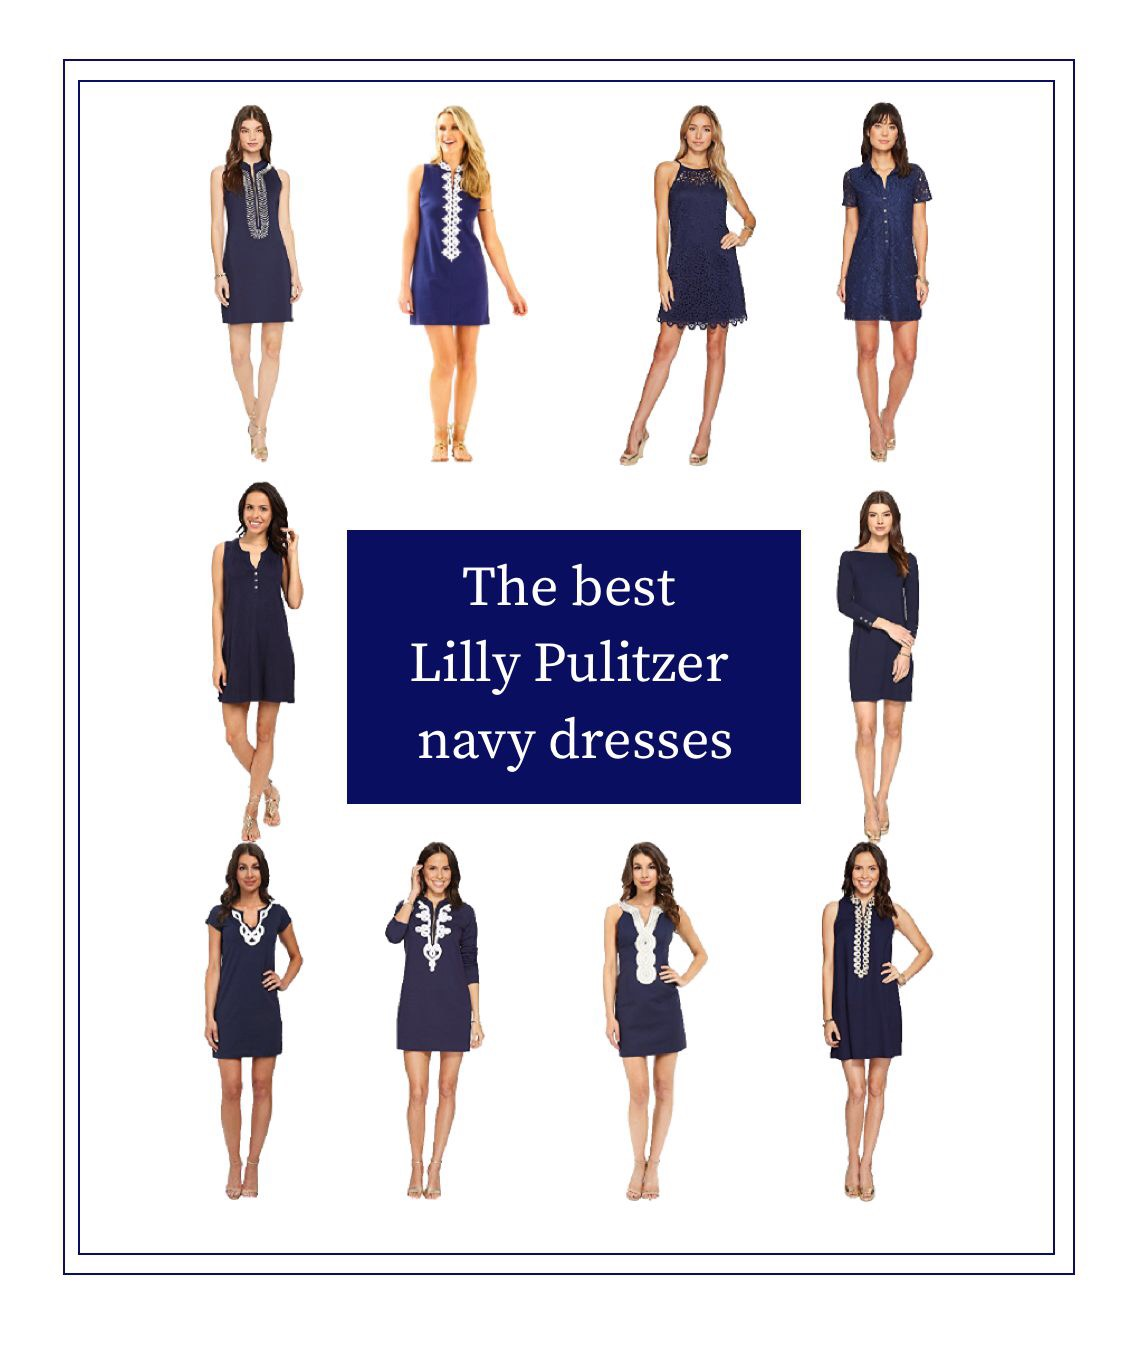 The best Lilly Pulitzer Navy Dresses